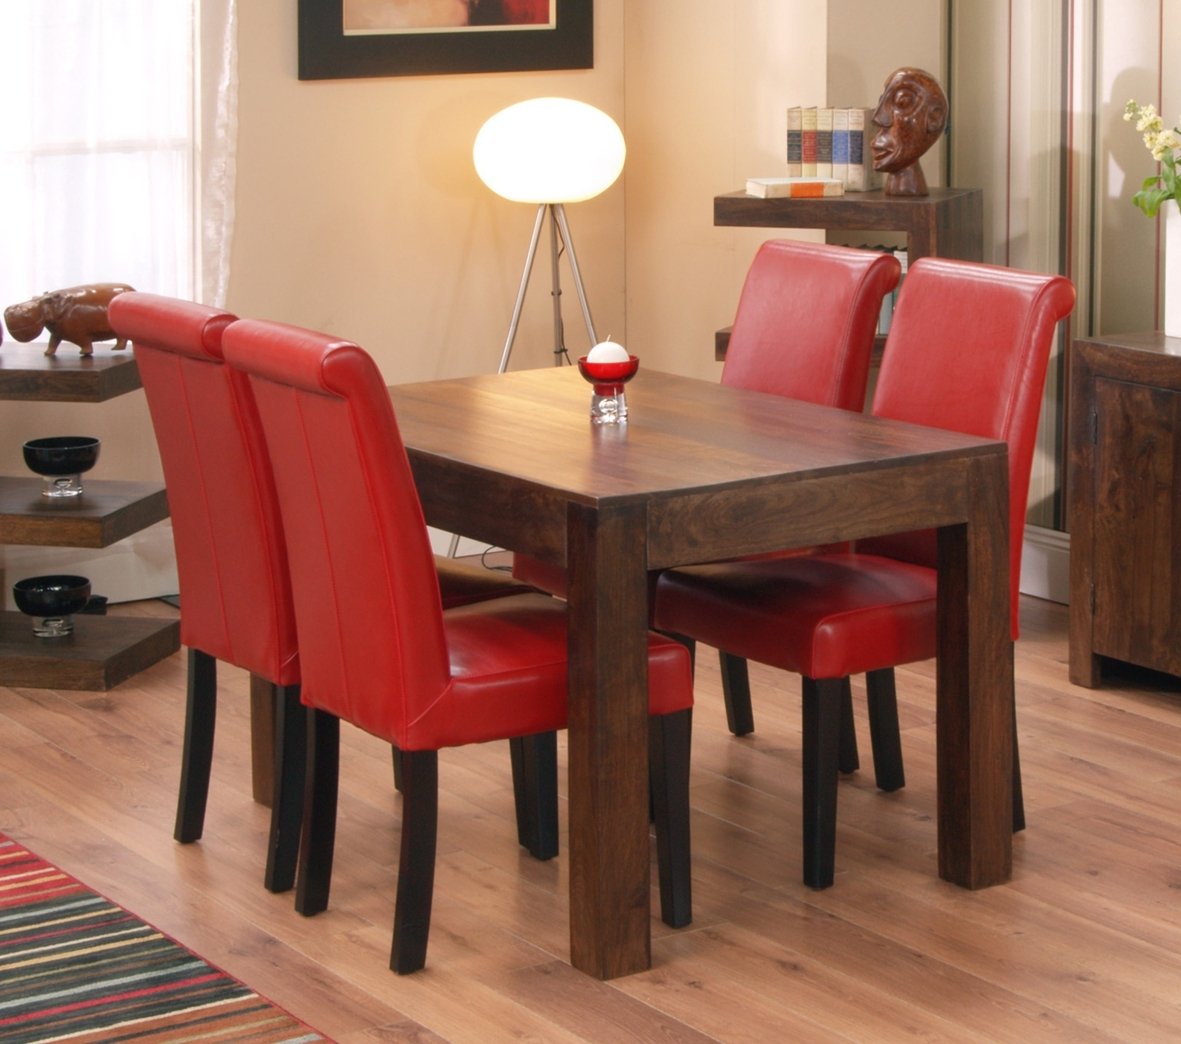 Most Recently Released Dining Tables: Glamorous Small Dining Table Sets Small Dining Sets Inside Compact Dining Tables And Chairs (View 24 of 25)